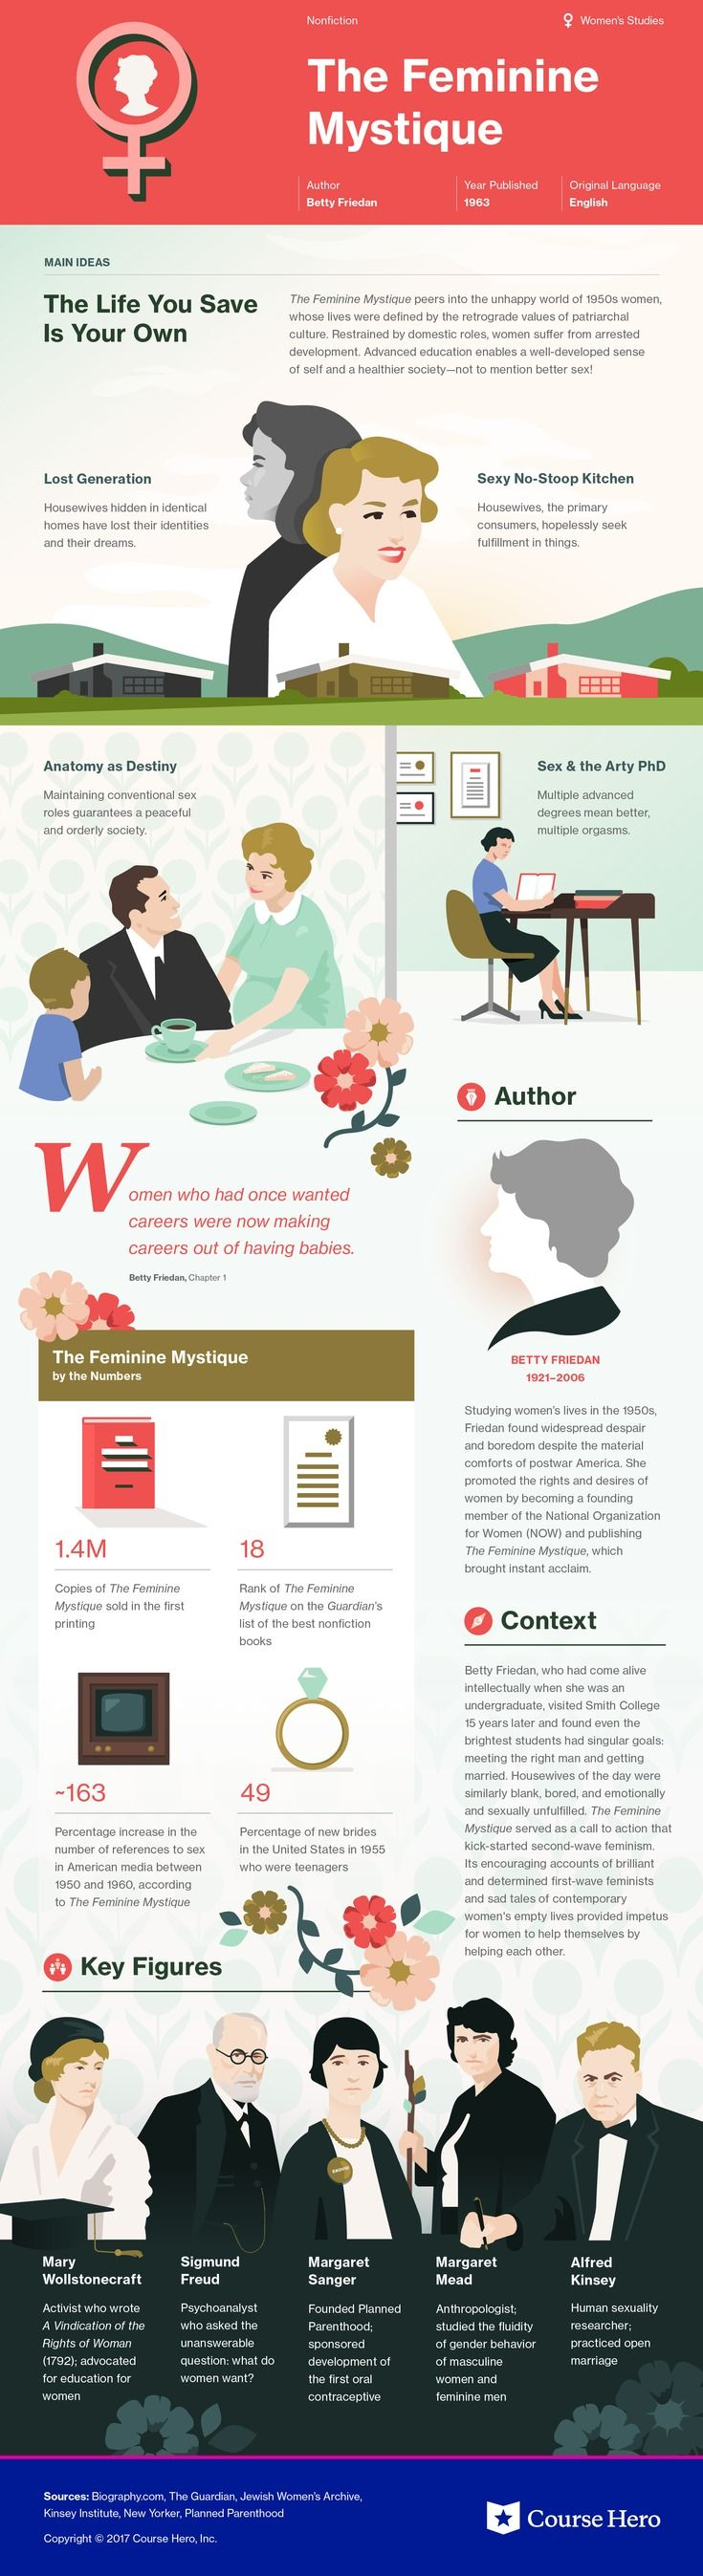 This @CourseHero infographic on The Feminine Mystique is both visually stunning and informative!